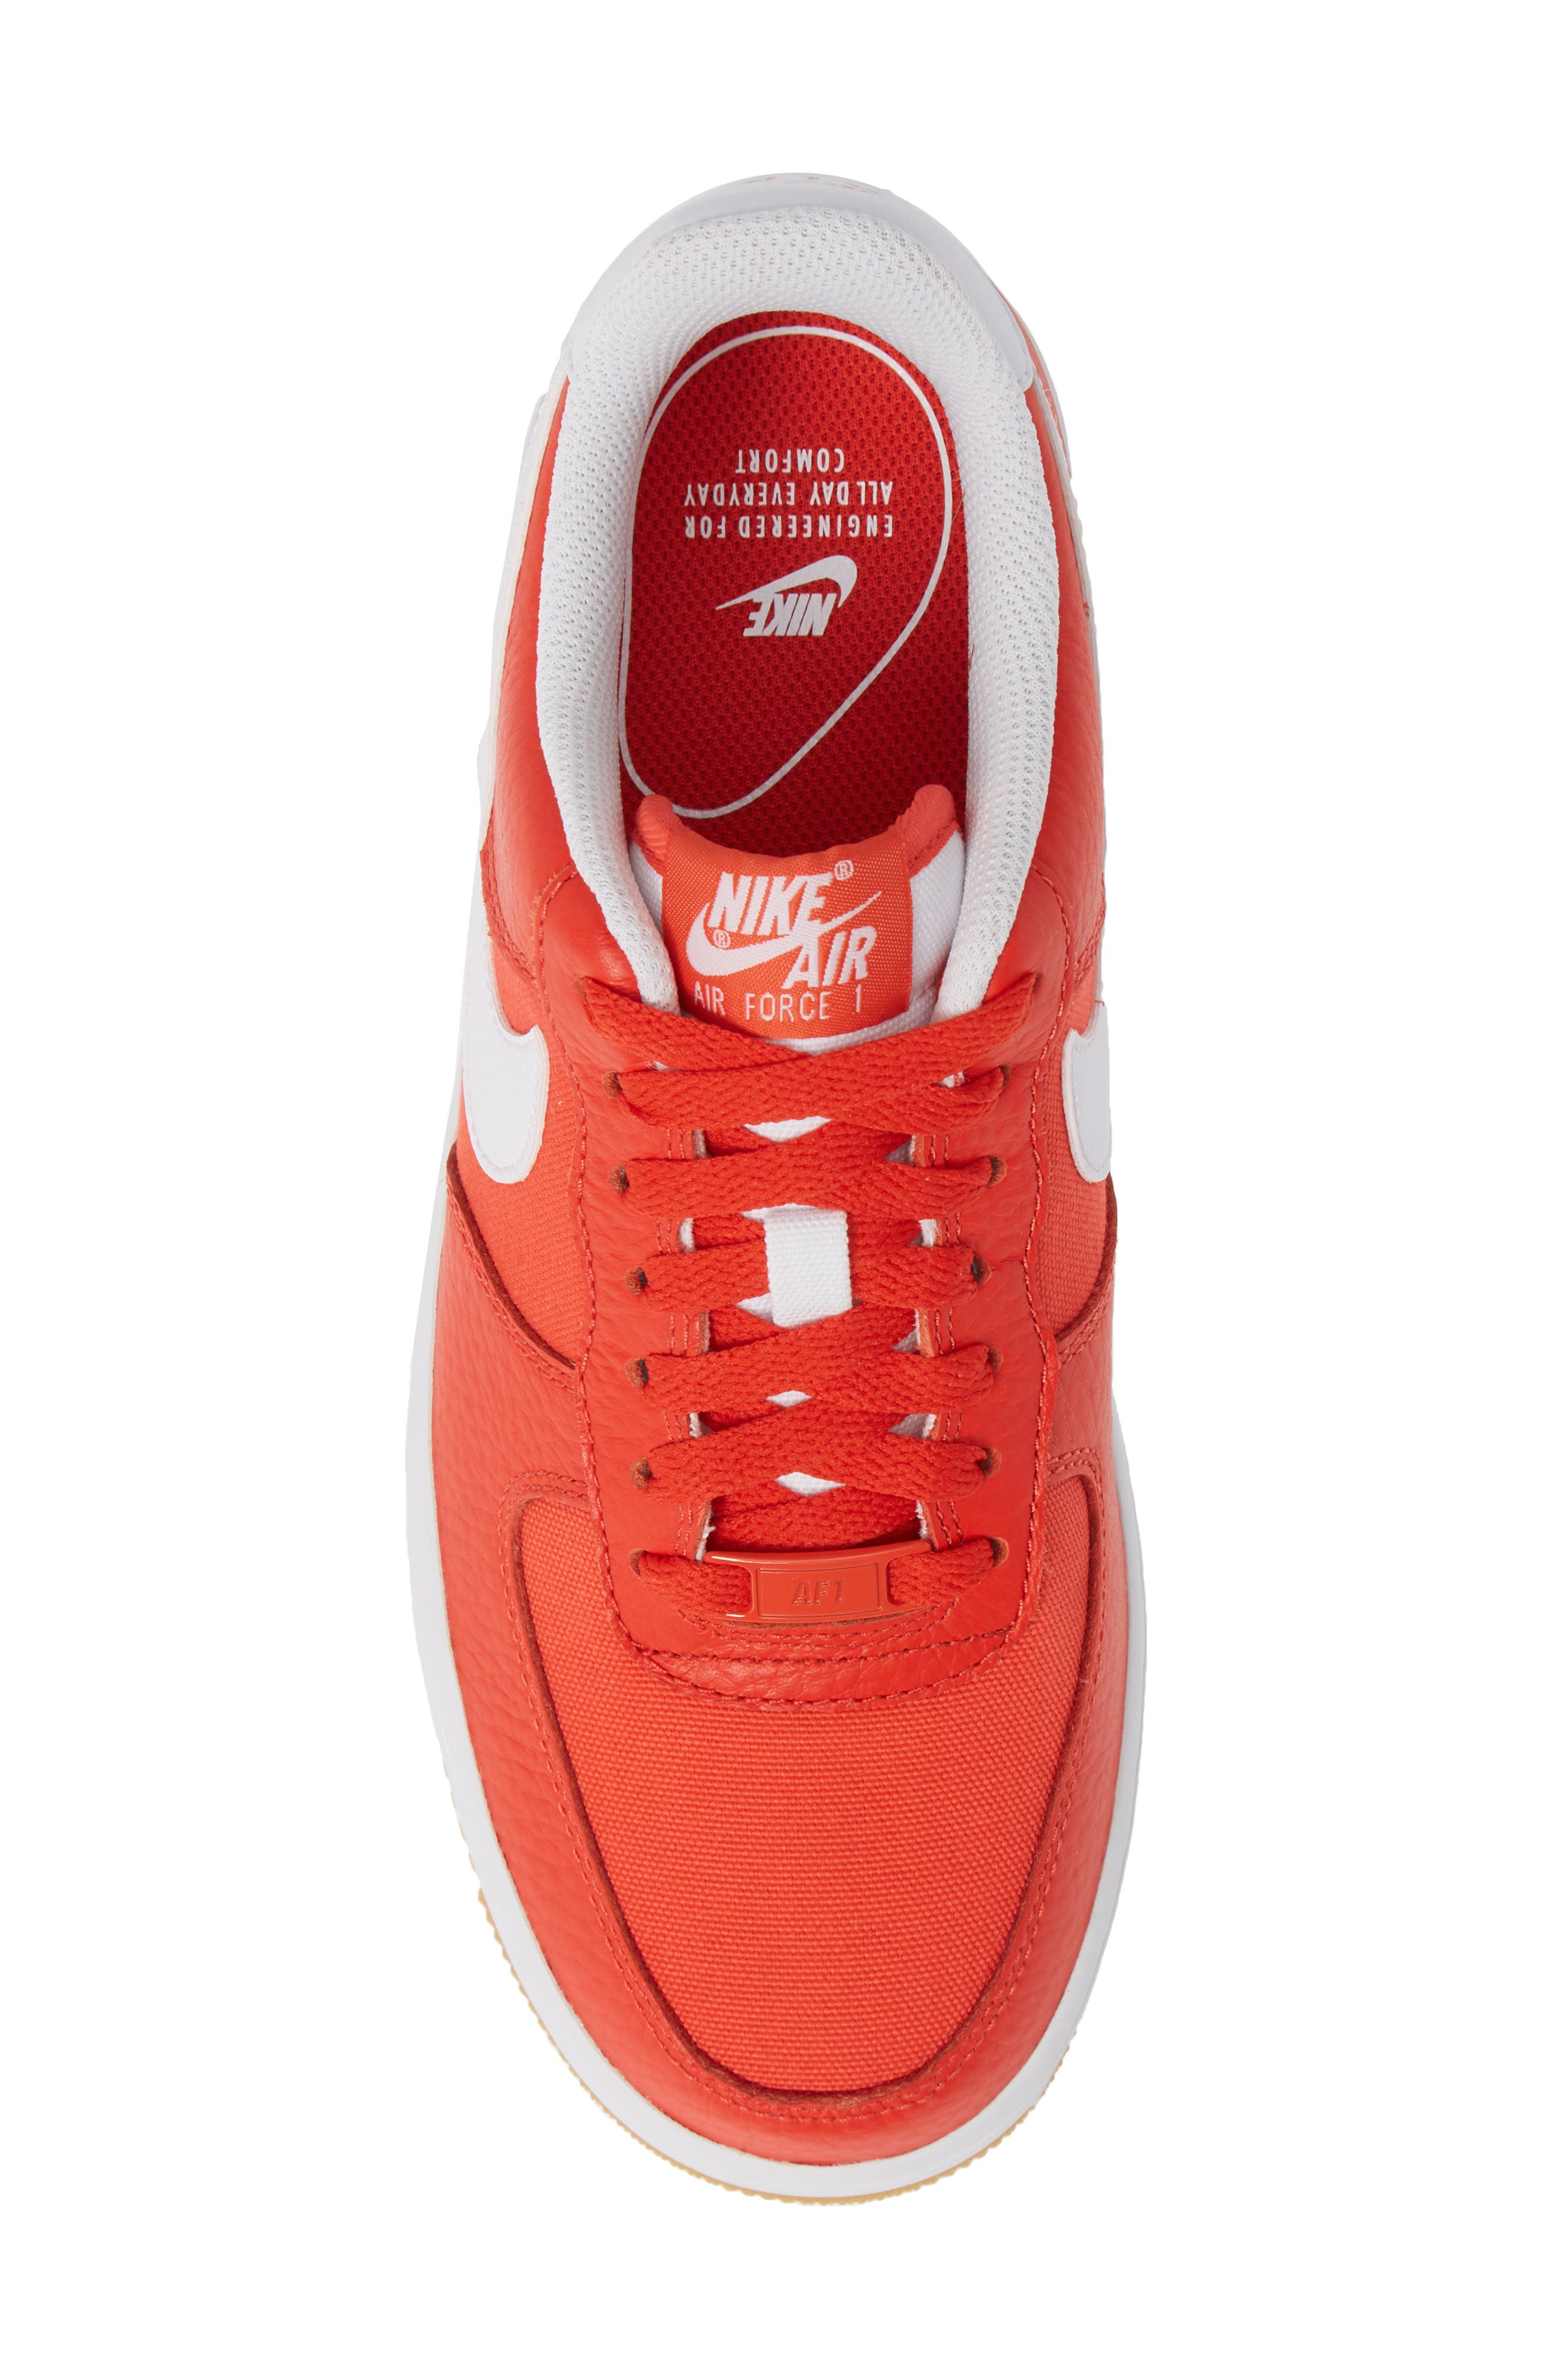 Air Force 1 '07 Premium Sneaker,                             Alternate thumbnail 5, color,                             RED/ WHITE/ LIGHT BROWN